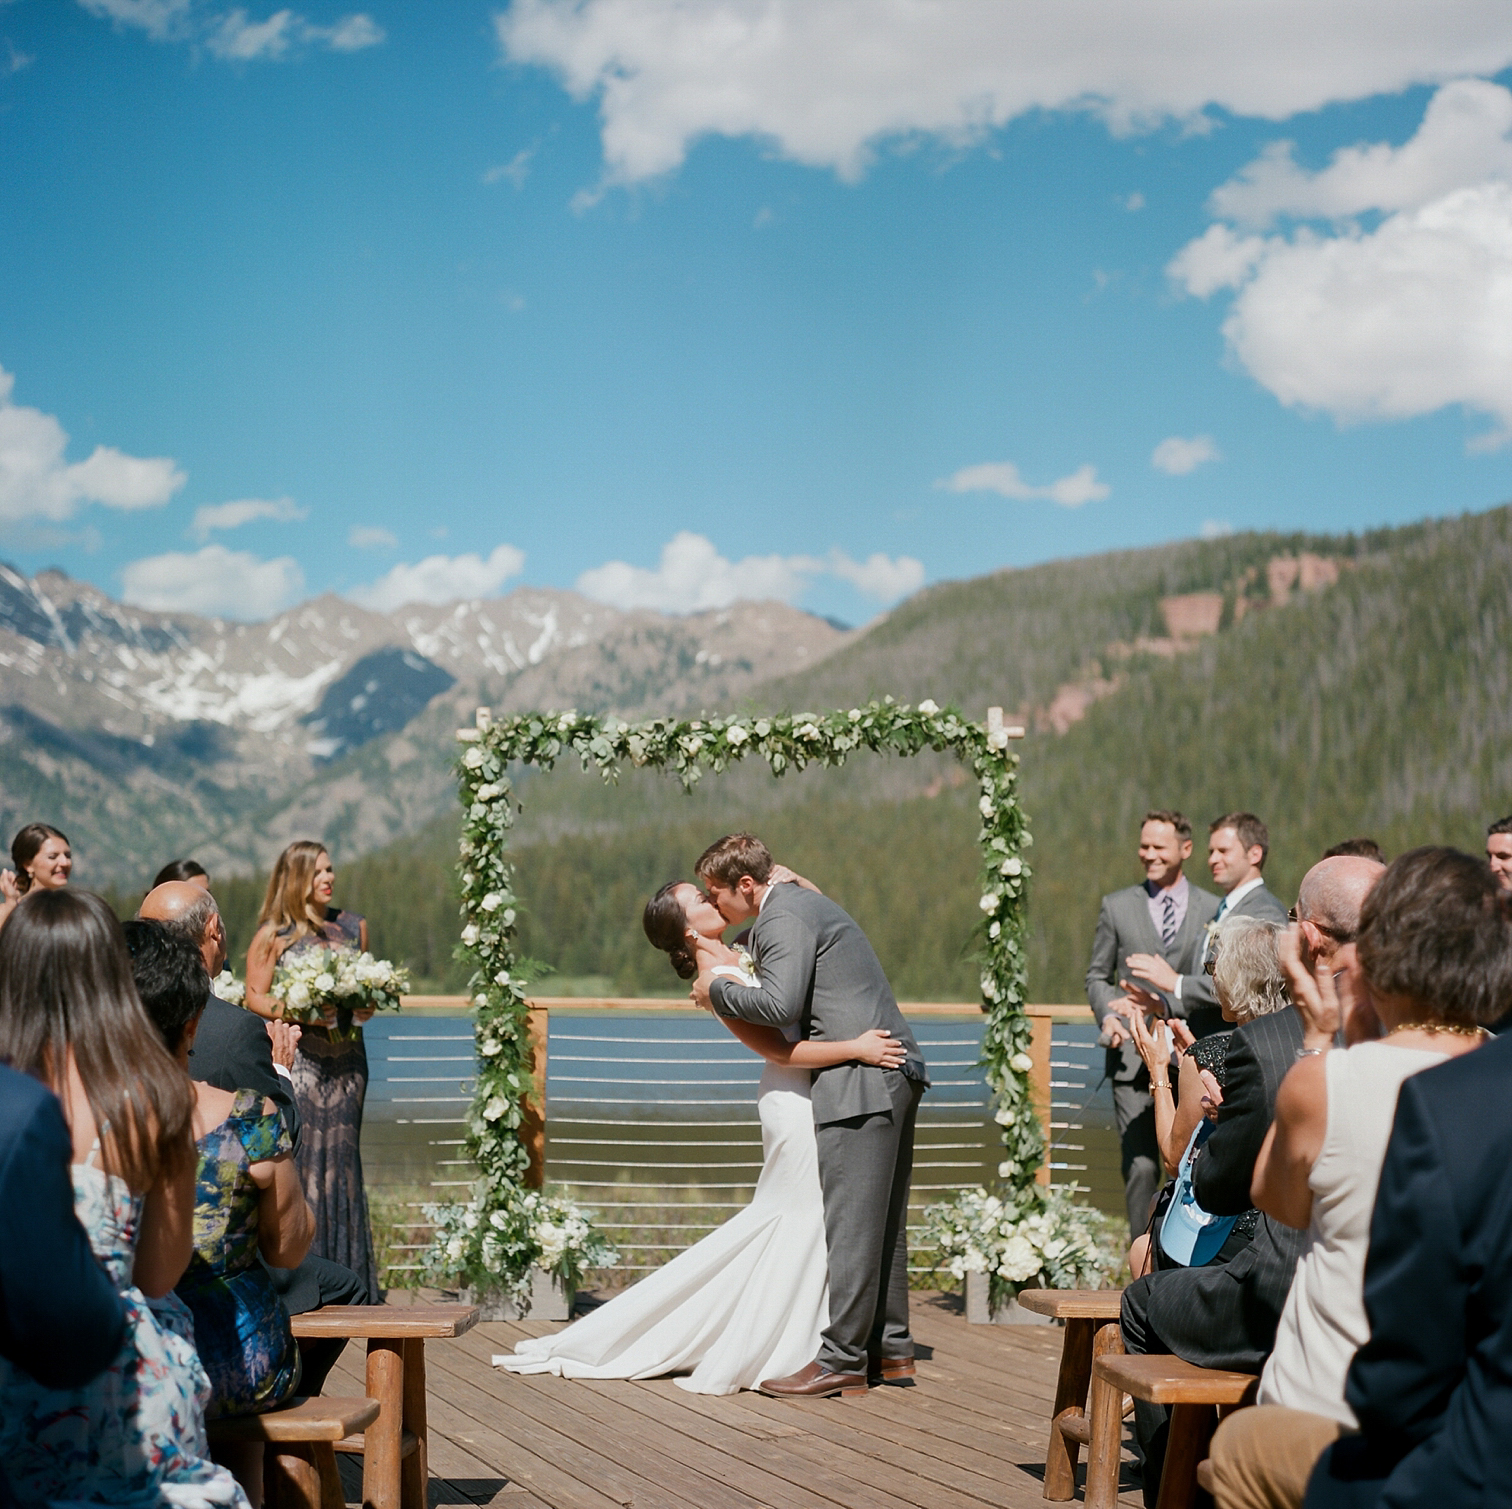 Wedding Ceremony At Piney River, Vail Colorado Wedding, Colorado Wedding Photographer, Film Photographer, Mountain Wedding, Colorado Destination Wedding Photographers, Best Photographers In Colorado, Film Photography, Denver Wedding Photographers